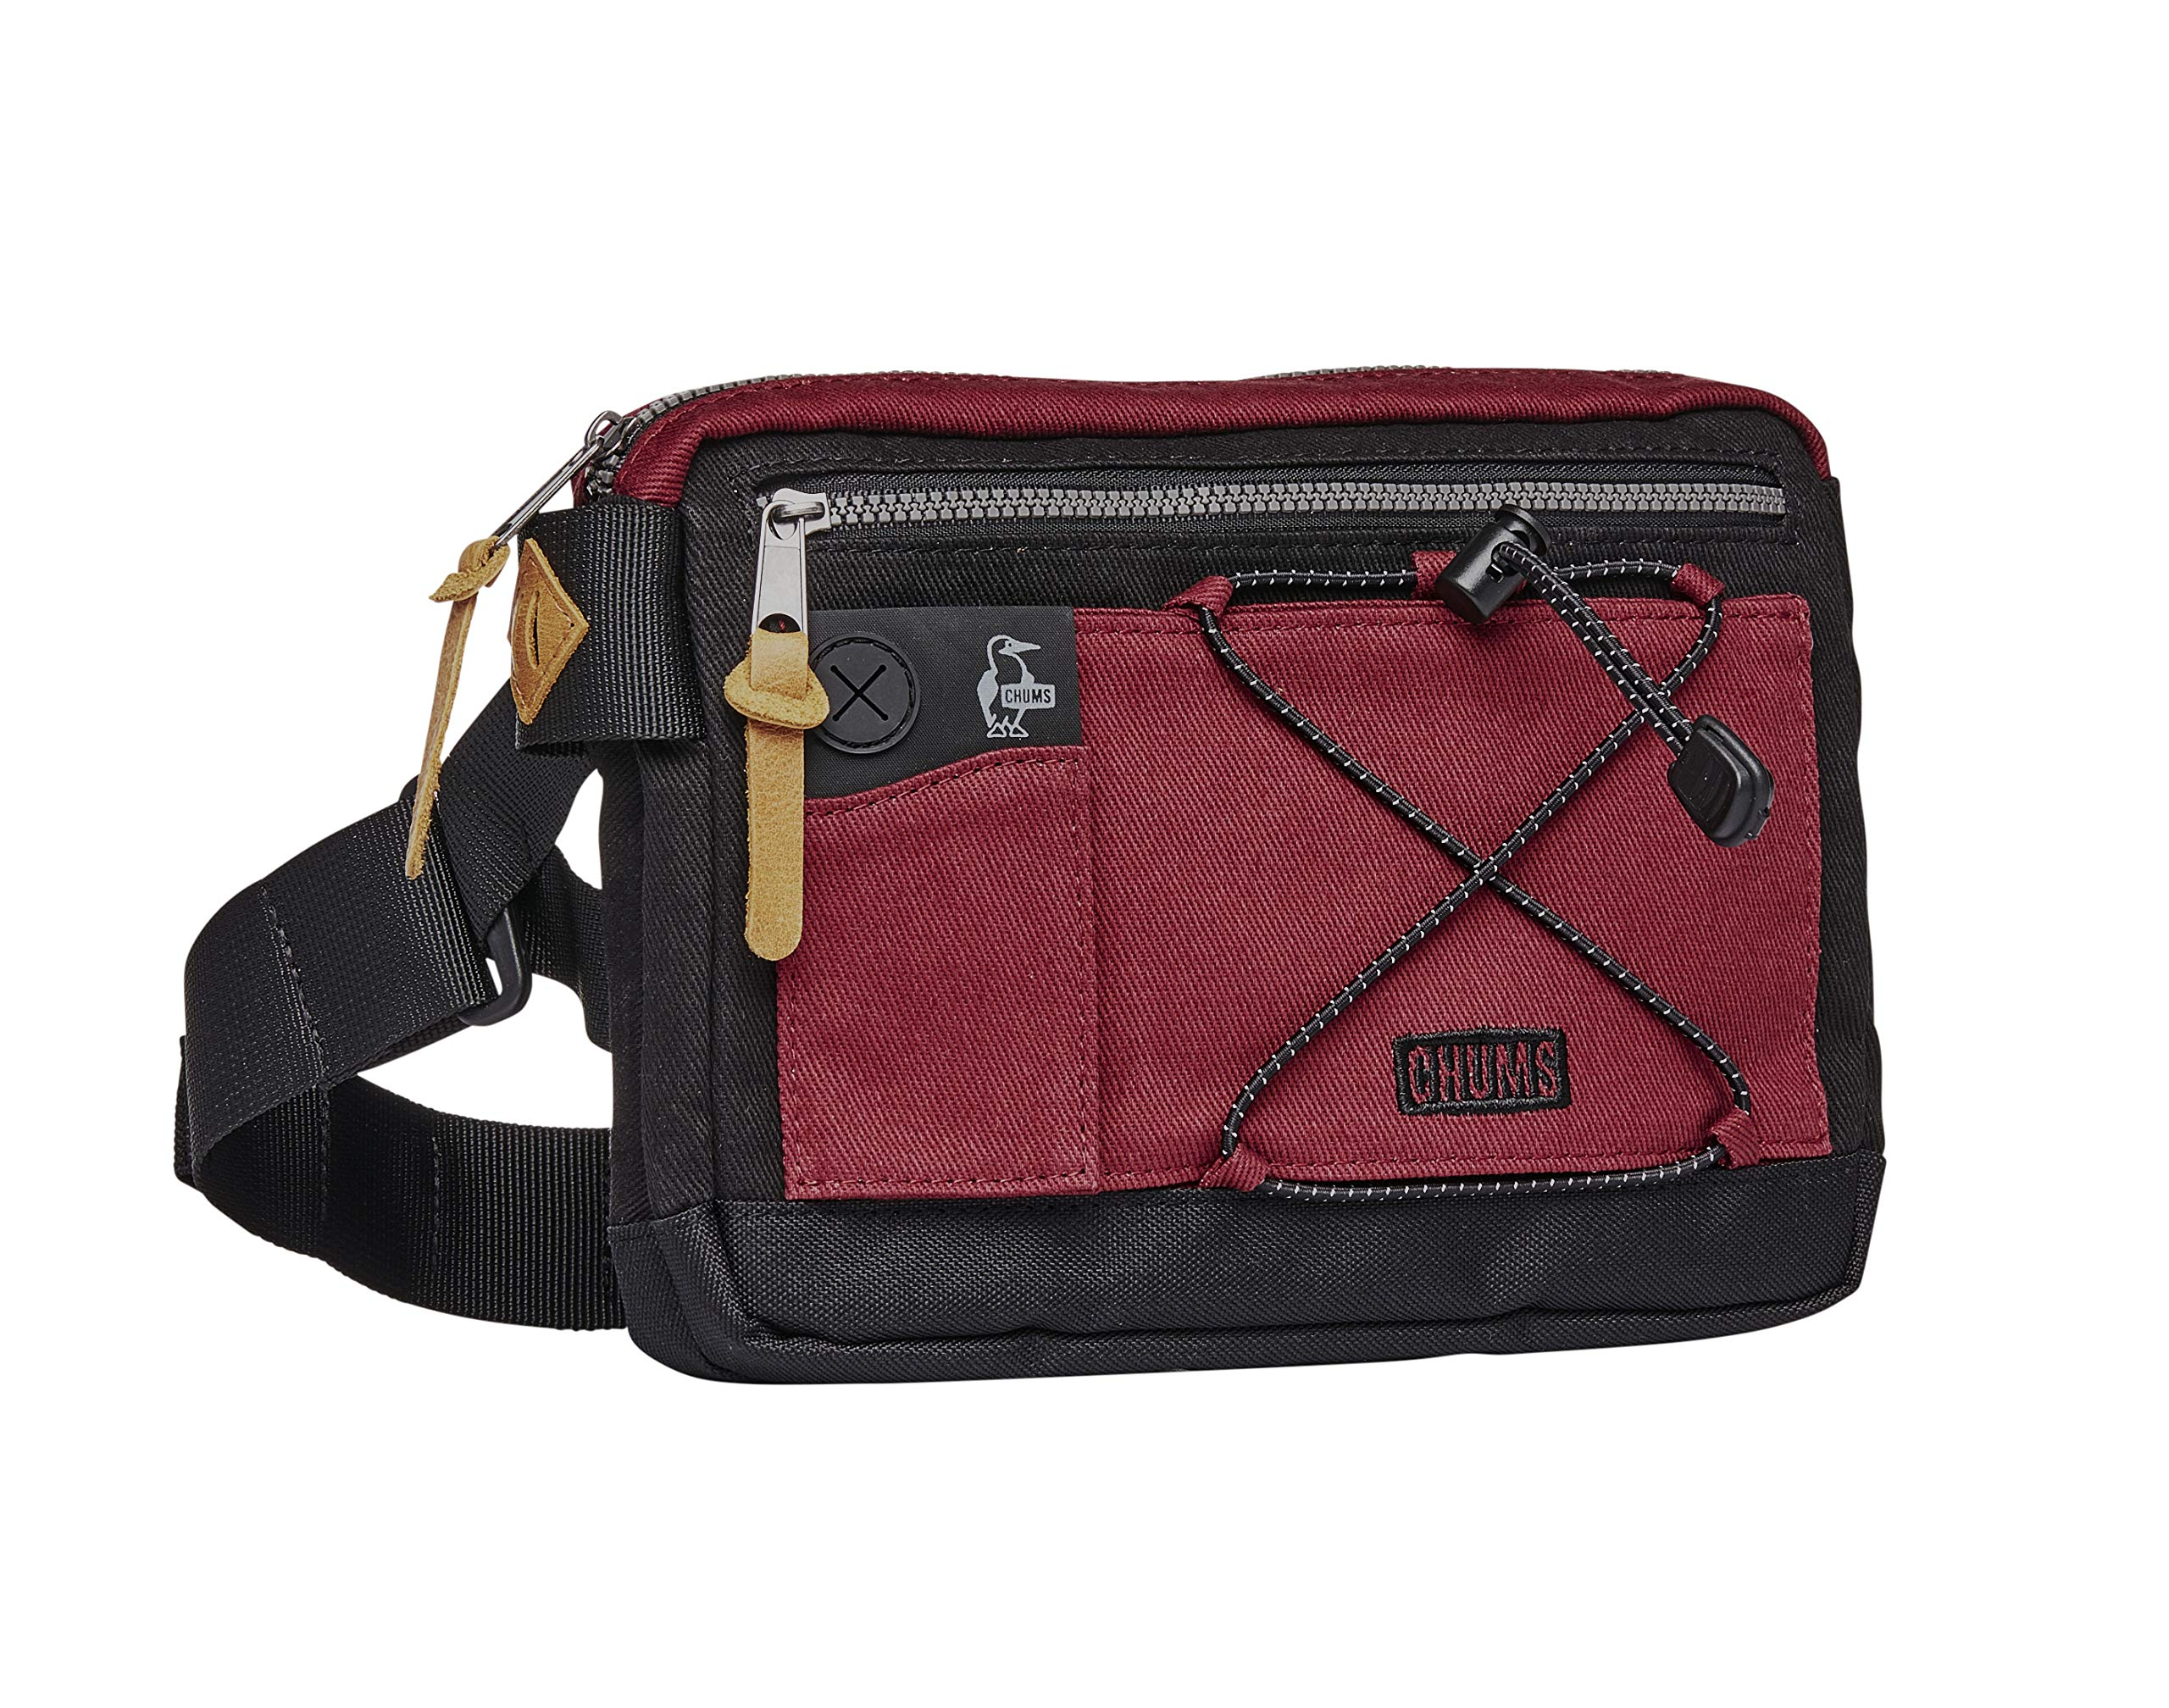 Chums 14079 Scrambler Reflective Waist Pack Shoulder Bag, One Size, Red/Black by Chums